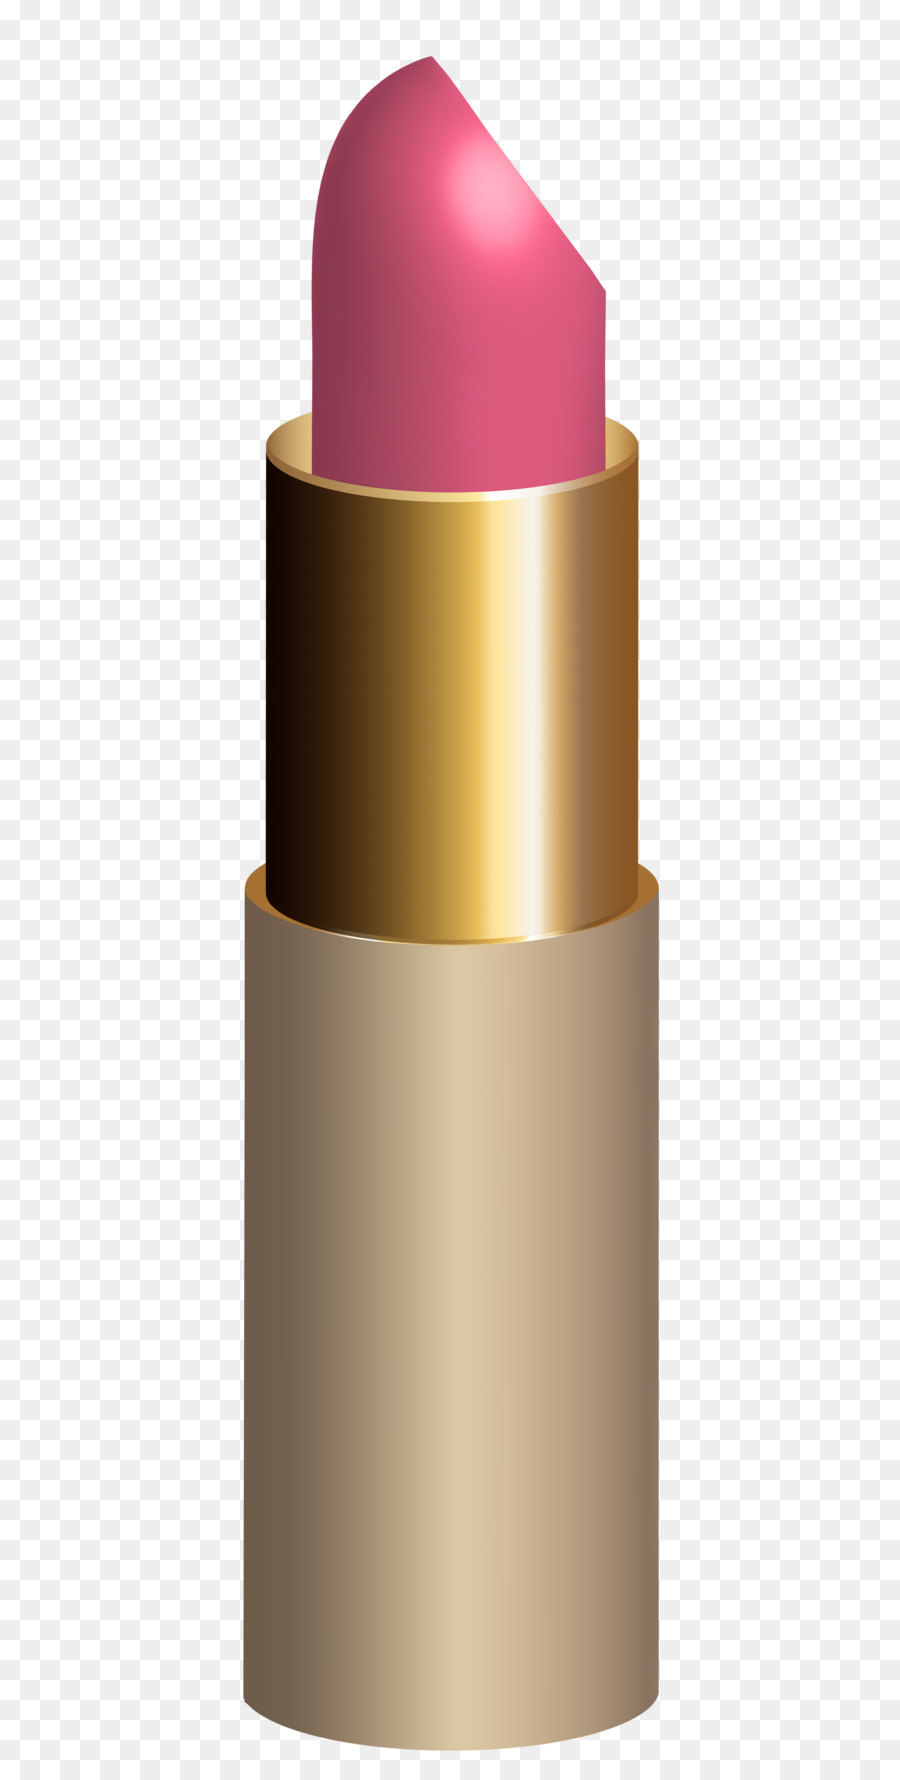 Lipstick clipart, Lipstick Transparent FREE for download on.